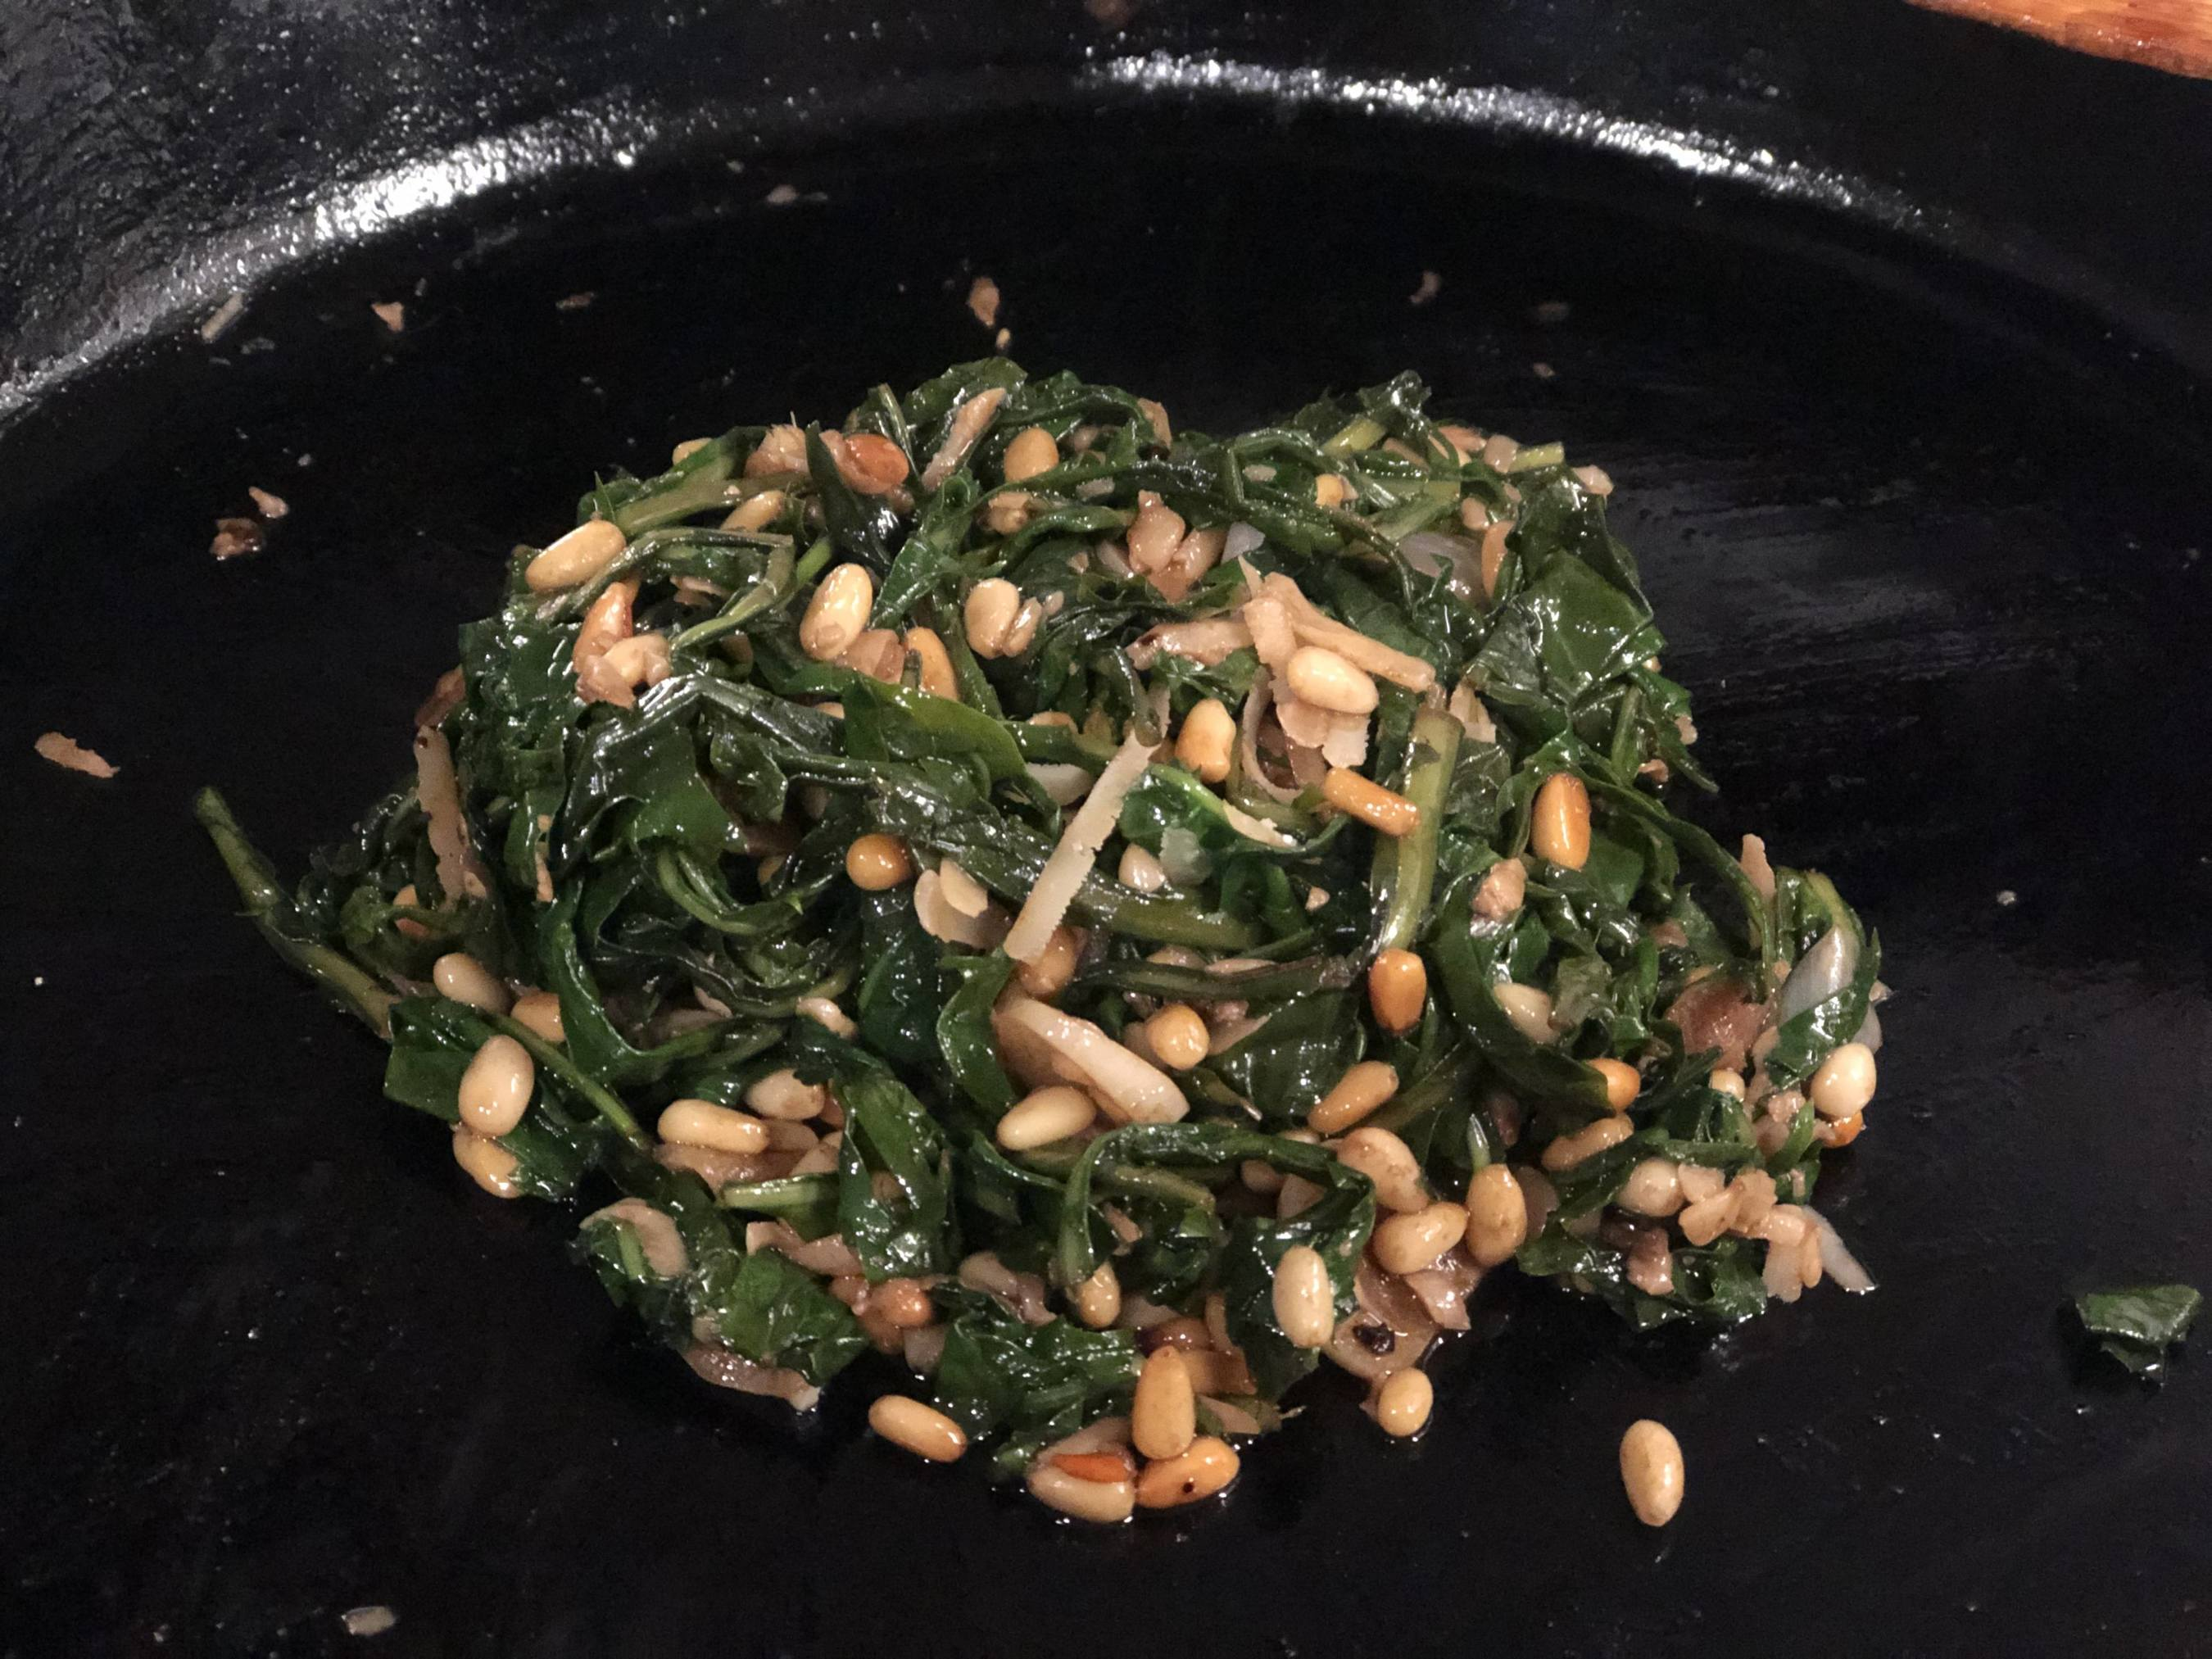 cooked dandelion greens with arugula, pine nuts, and parmesan cheese